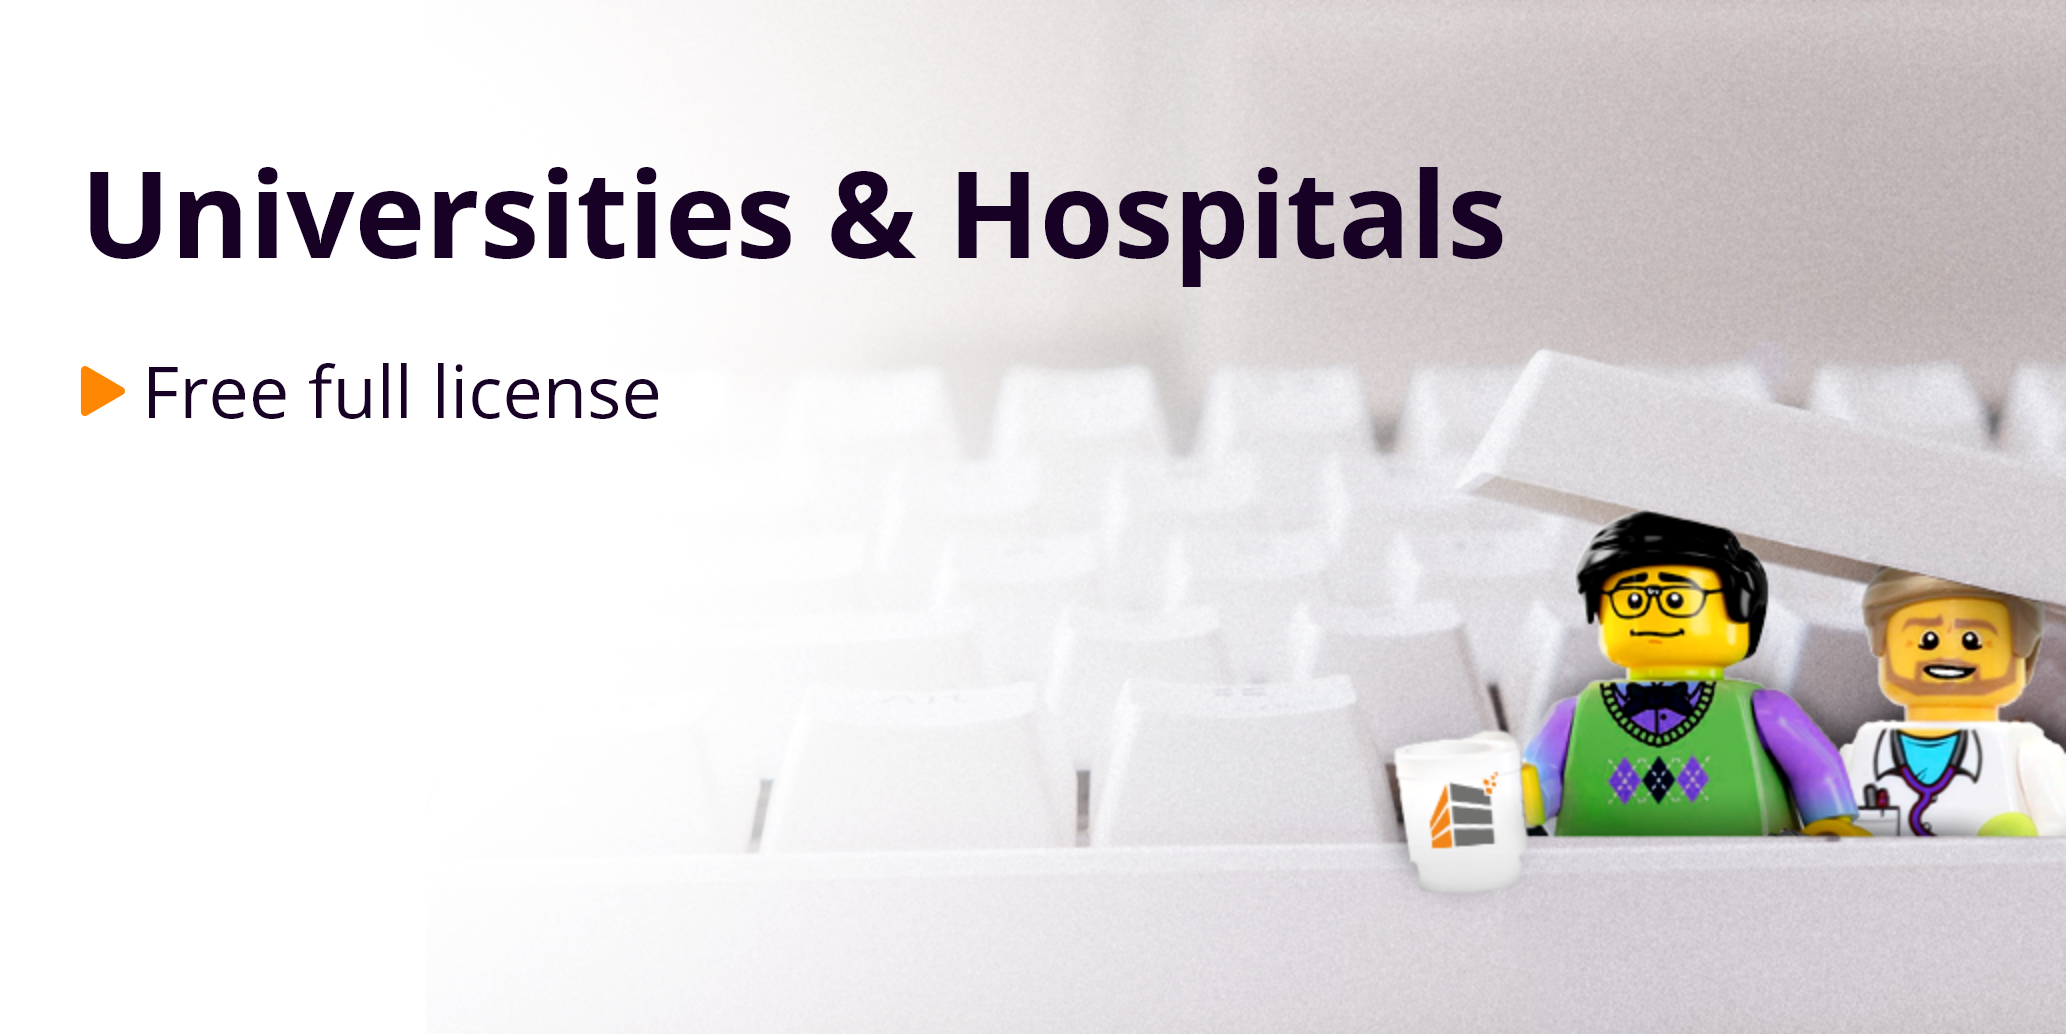 Runecast COVID response - Free Full Licenses for Universities & Hospitals